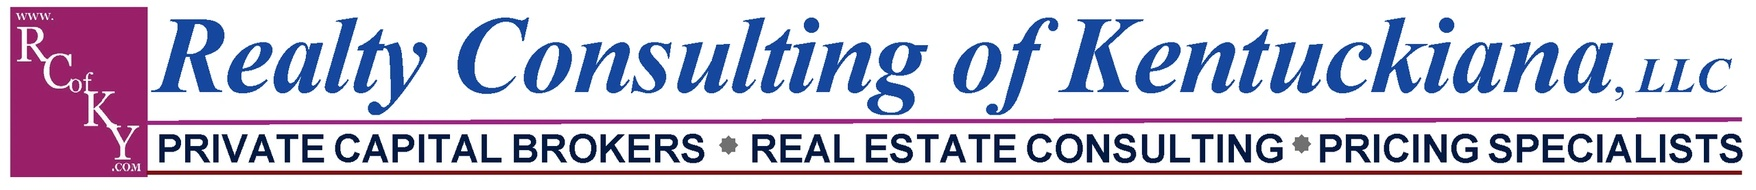 REALTY CONSULTING OF KENTUCKIANA